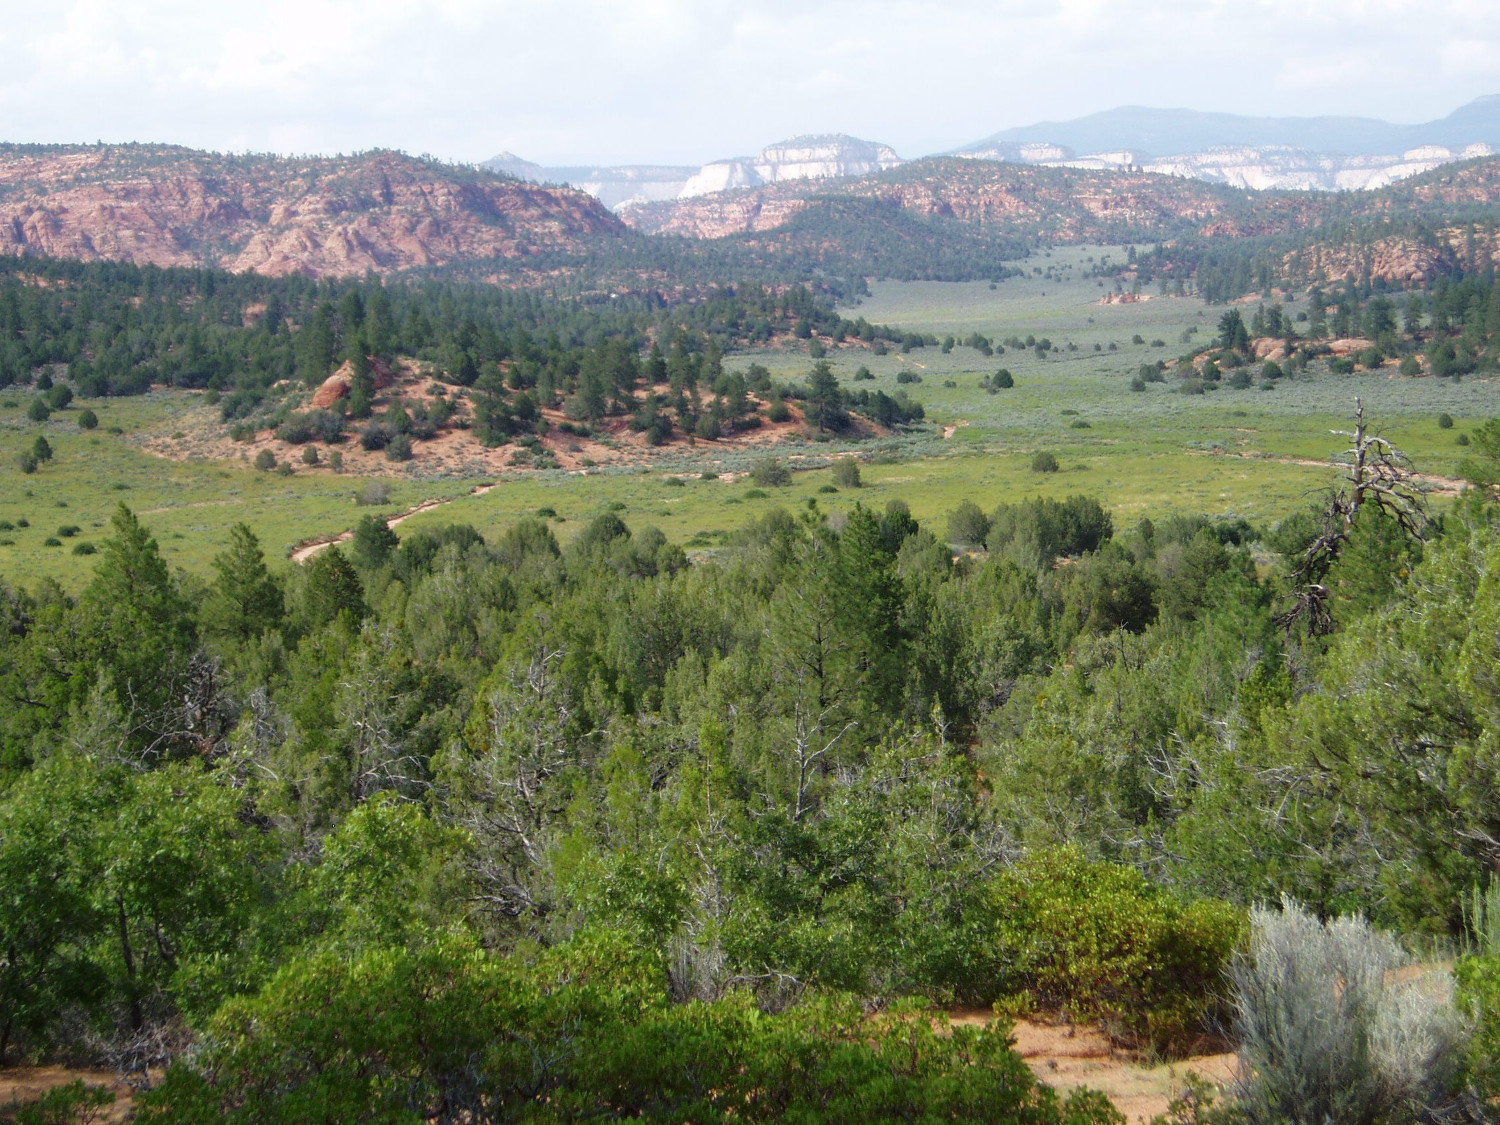 A 17-year-old boy was rescued by helicopter after falling 50 feet while free climbing in the Canaan Mountain Wilderness near Hildale, Utah, photo undated | Image courtesy Bureau of Land Management, St. George News